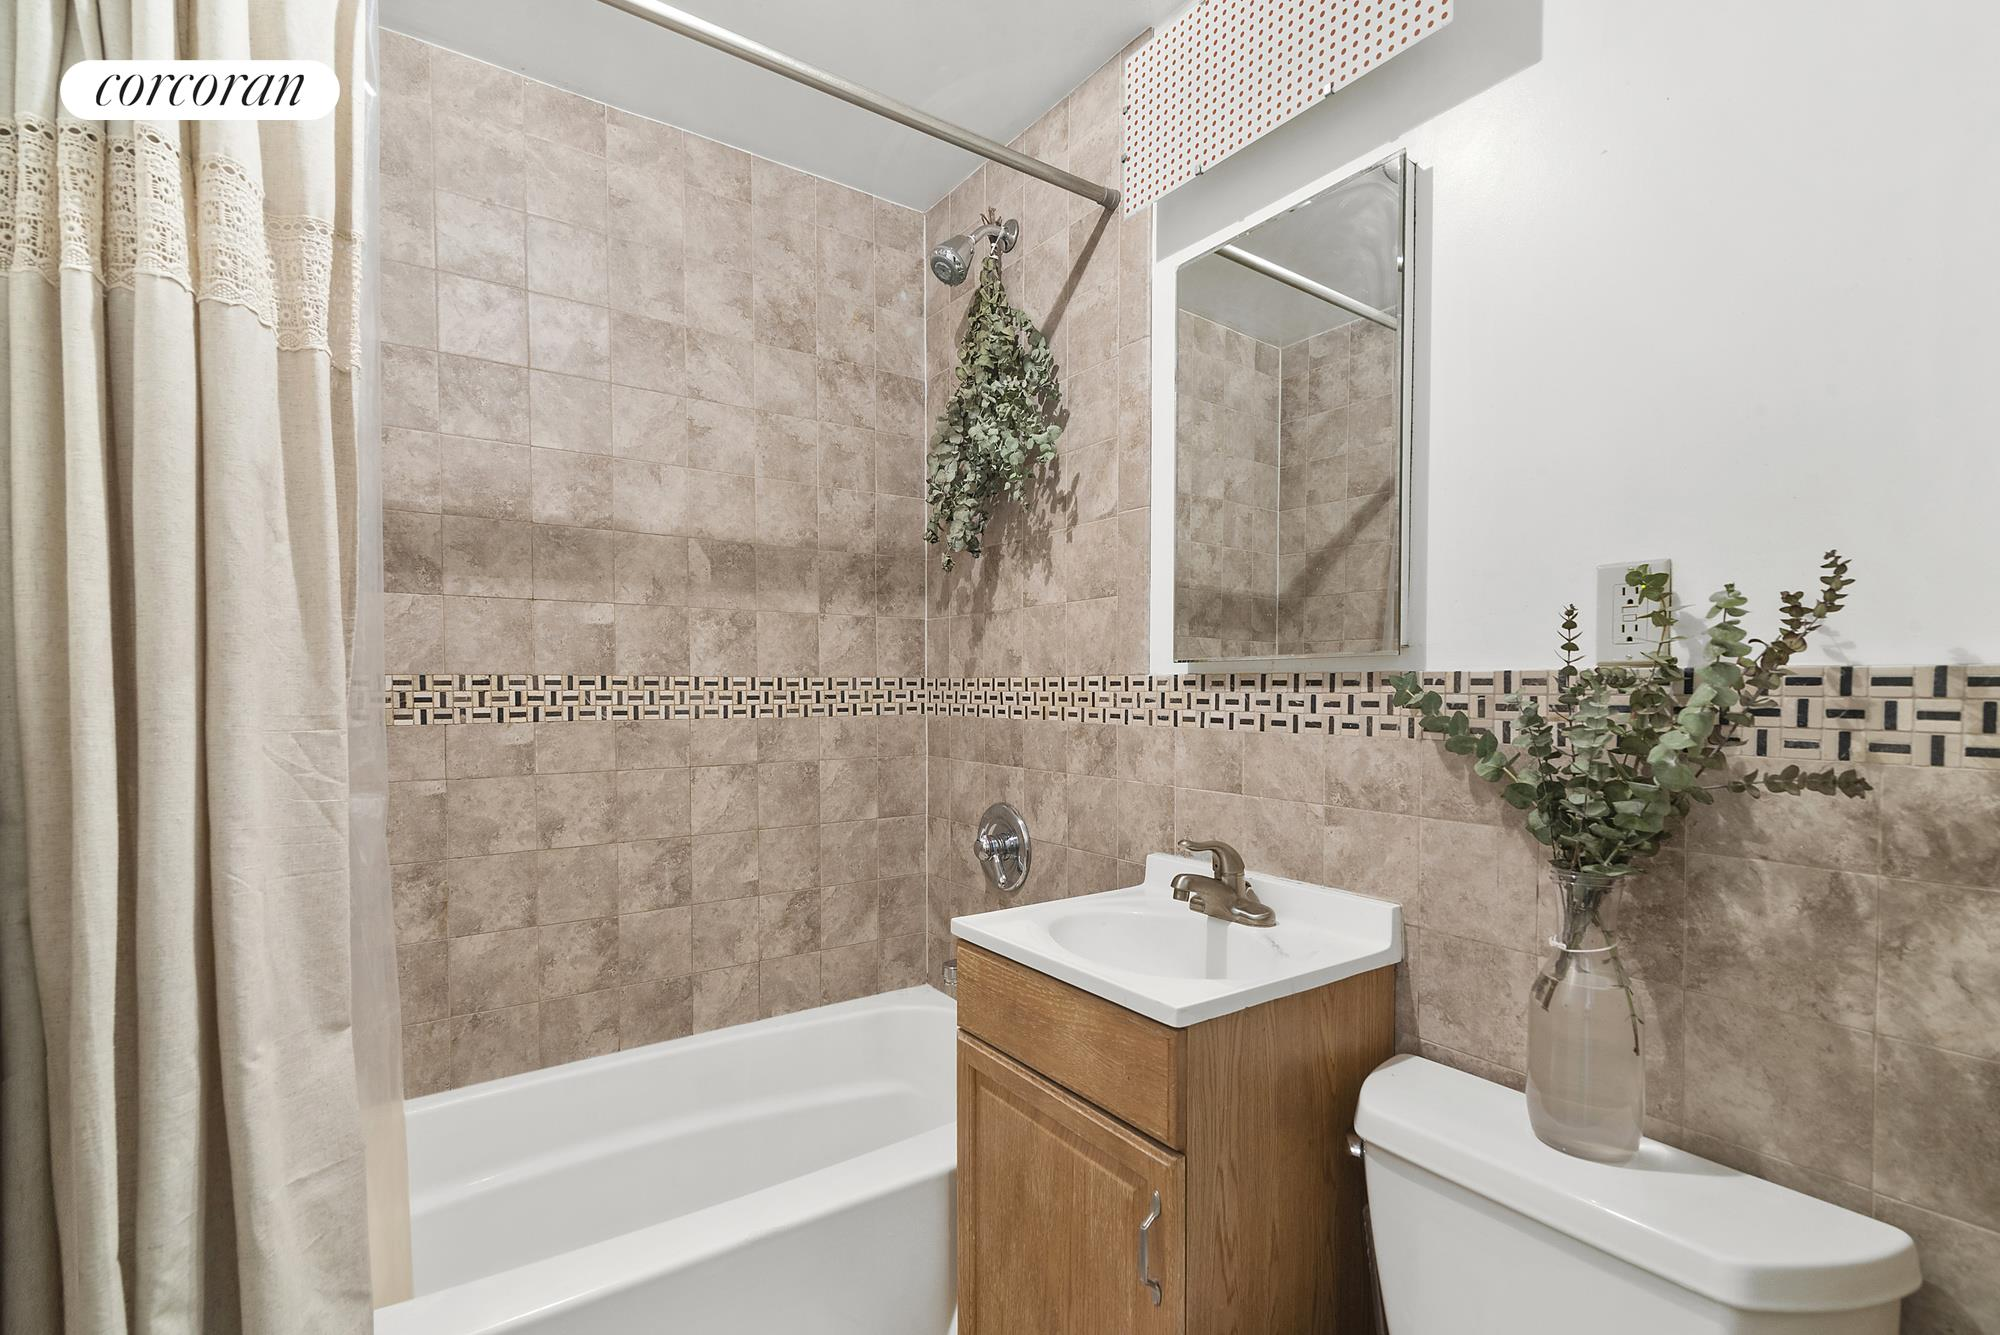 Apartment for sale at 152 East 35th Street, Apt 2A